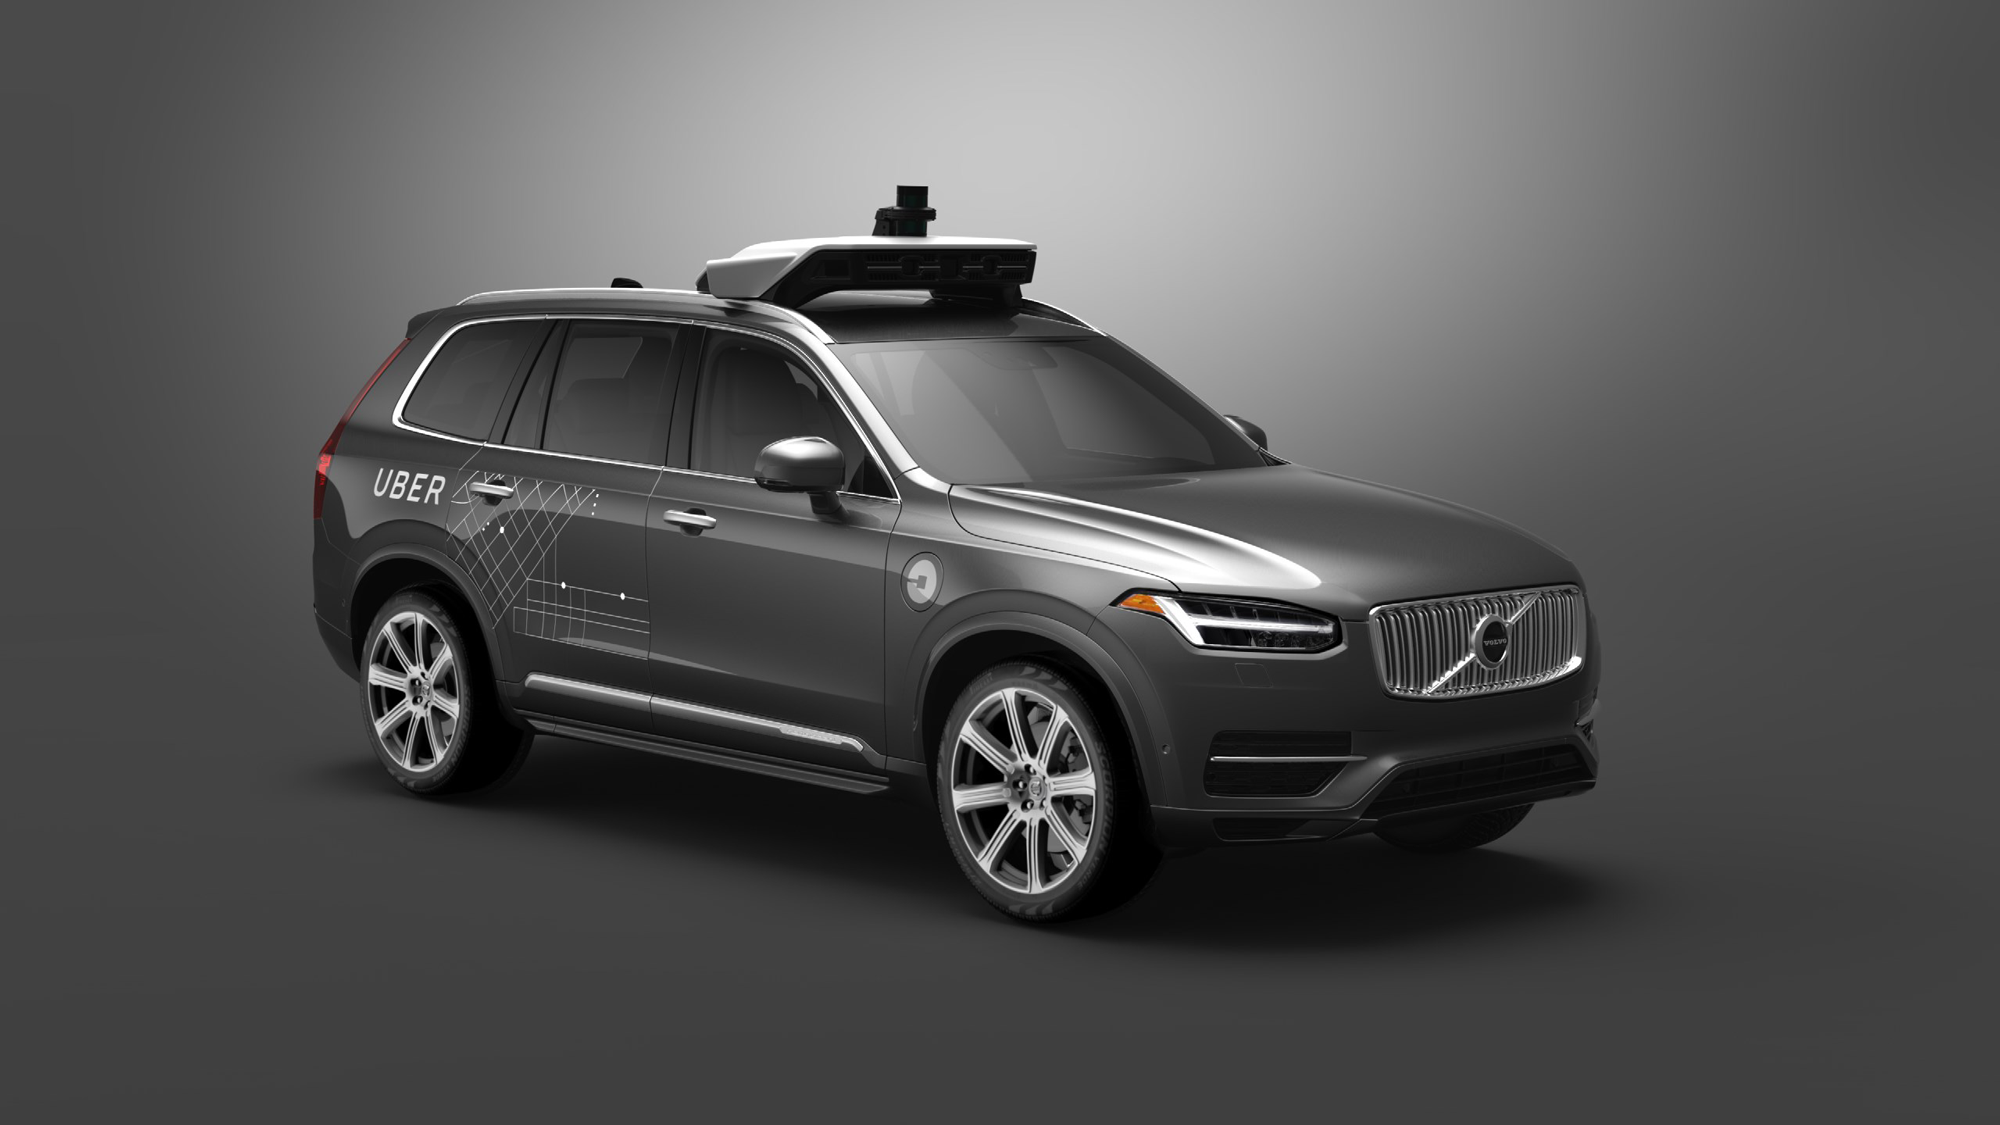 A Volvo SUV with automated driving technology developed by Uber.